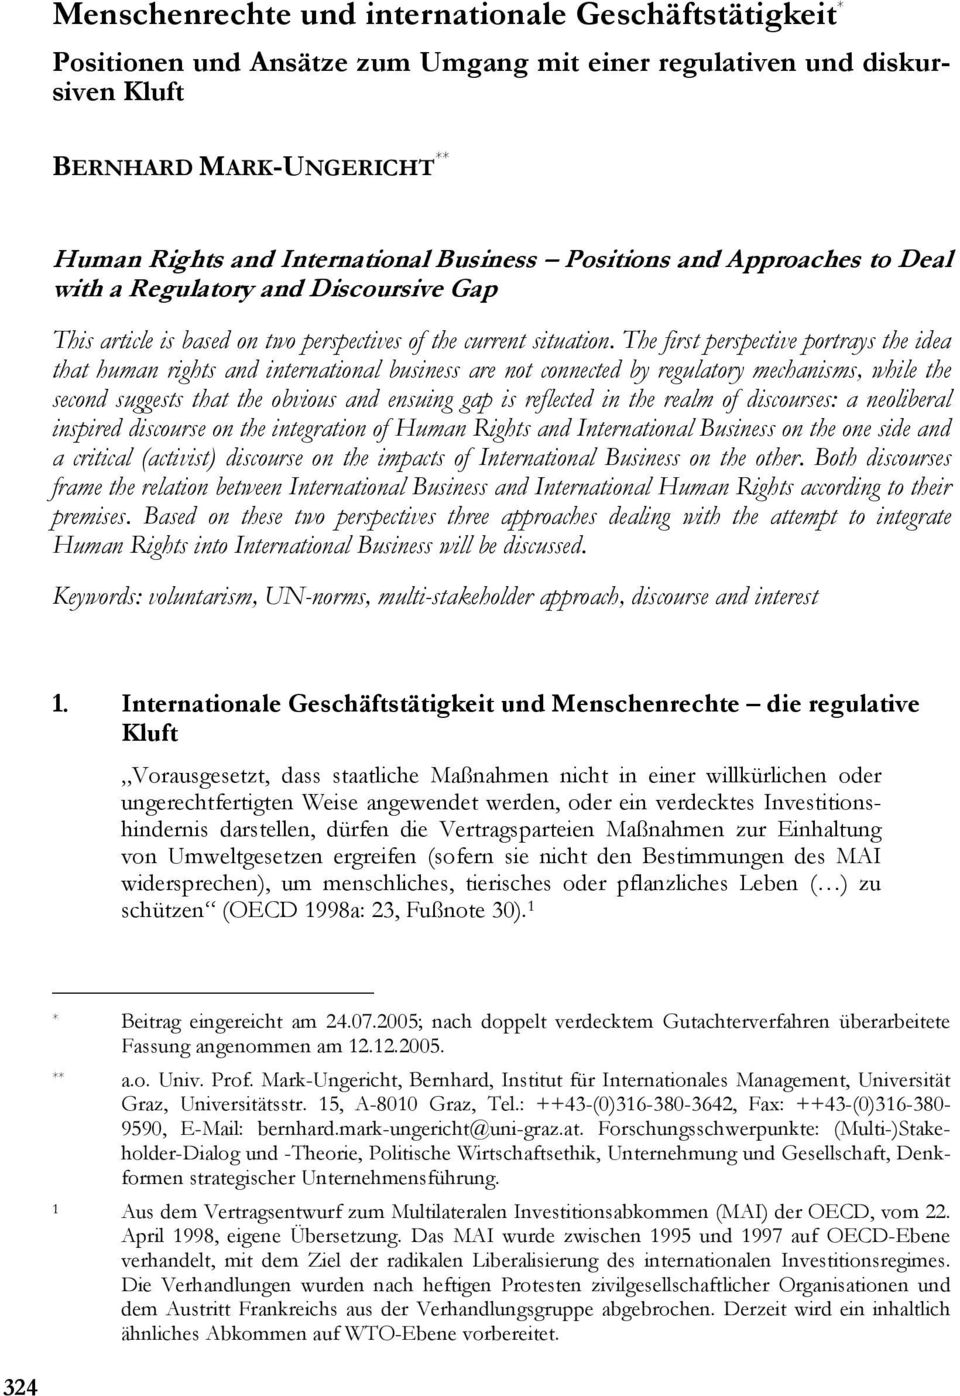 The first perspective portrays the idea that human rights and international business are not connected by regulatory mechanisms, while the second suggests that the obvious and ensuing gap is